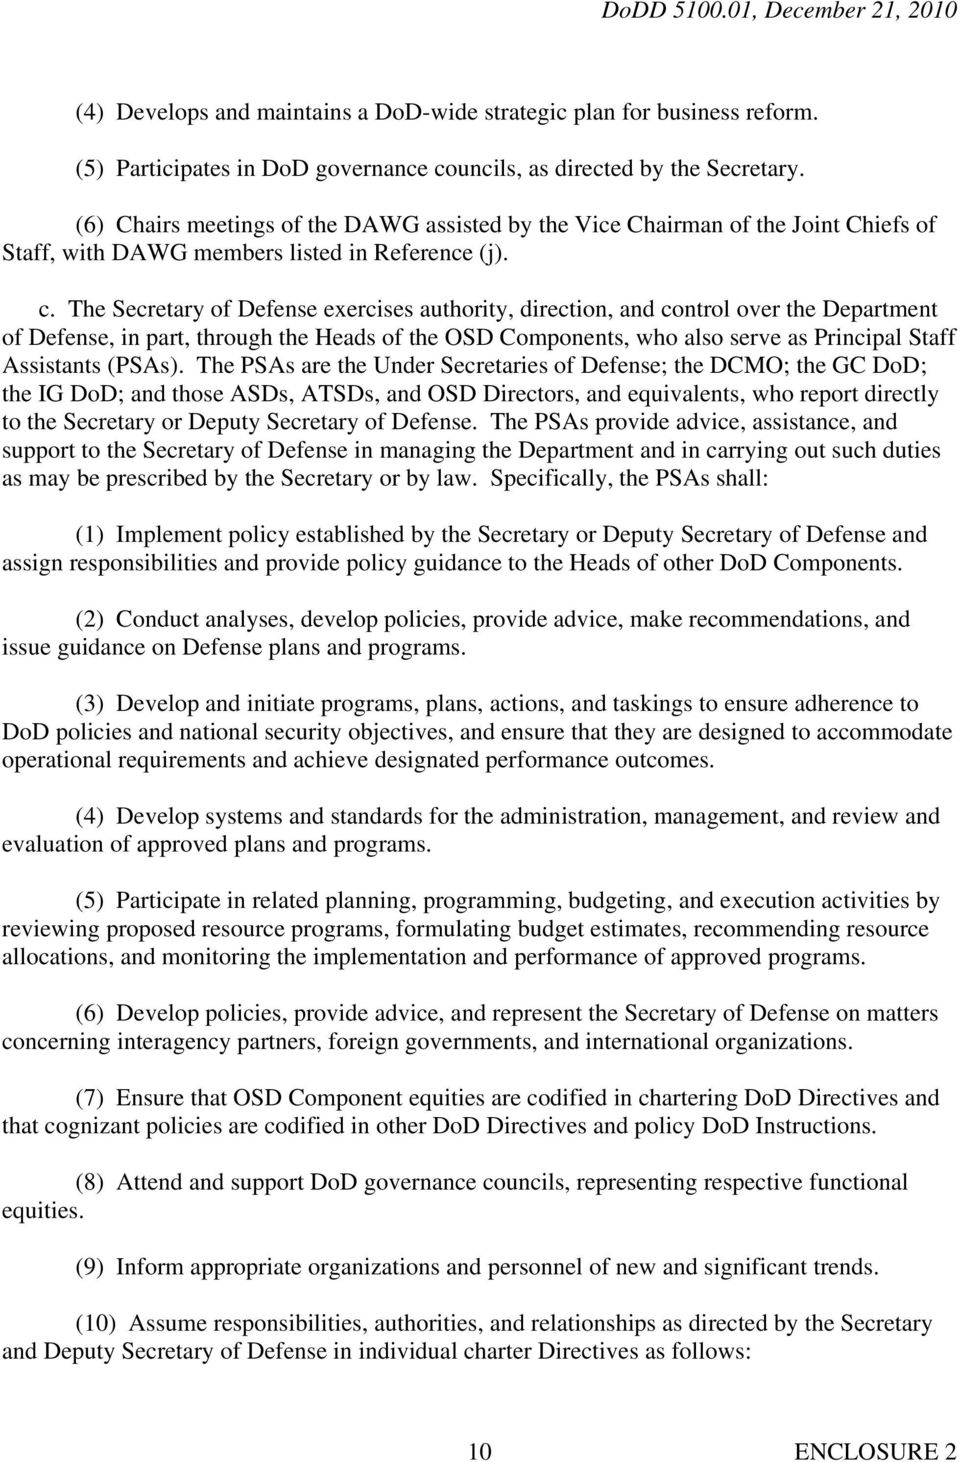 The Secretary of Defense exercises authority, direction, and control over the Department of Defense, in part, through the Heads of the OSD Components, who also serve as Principal Staff Assistants